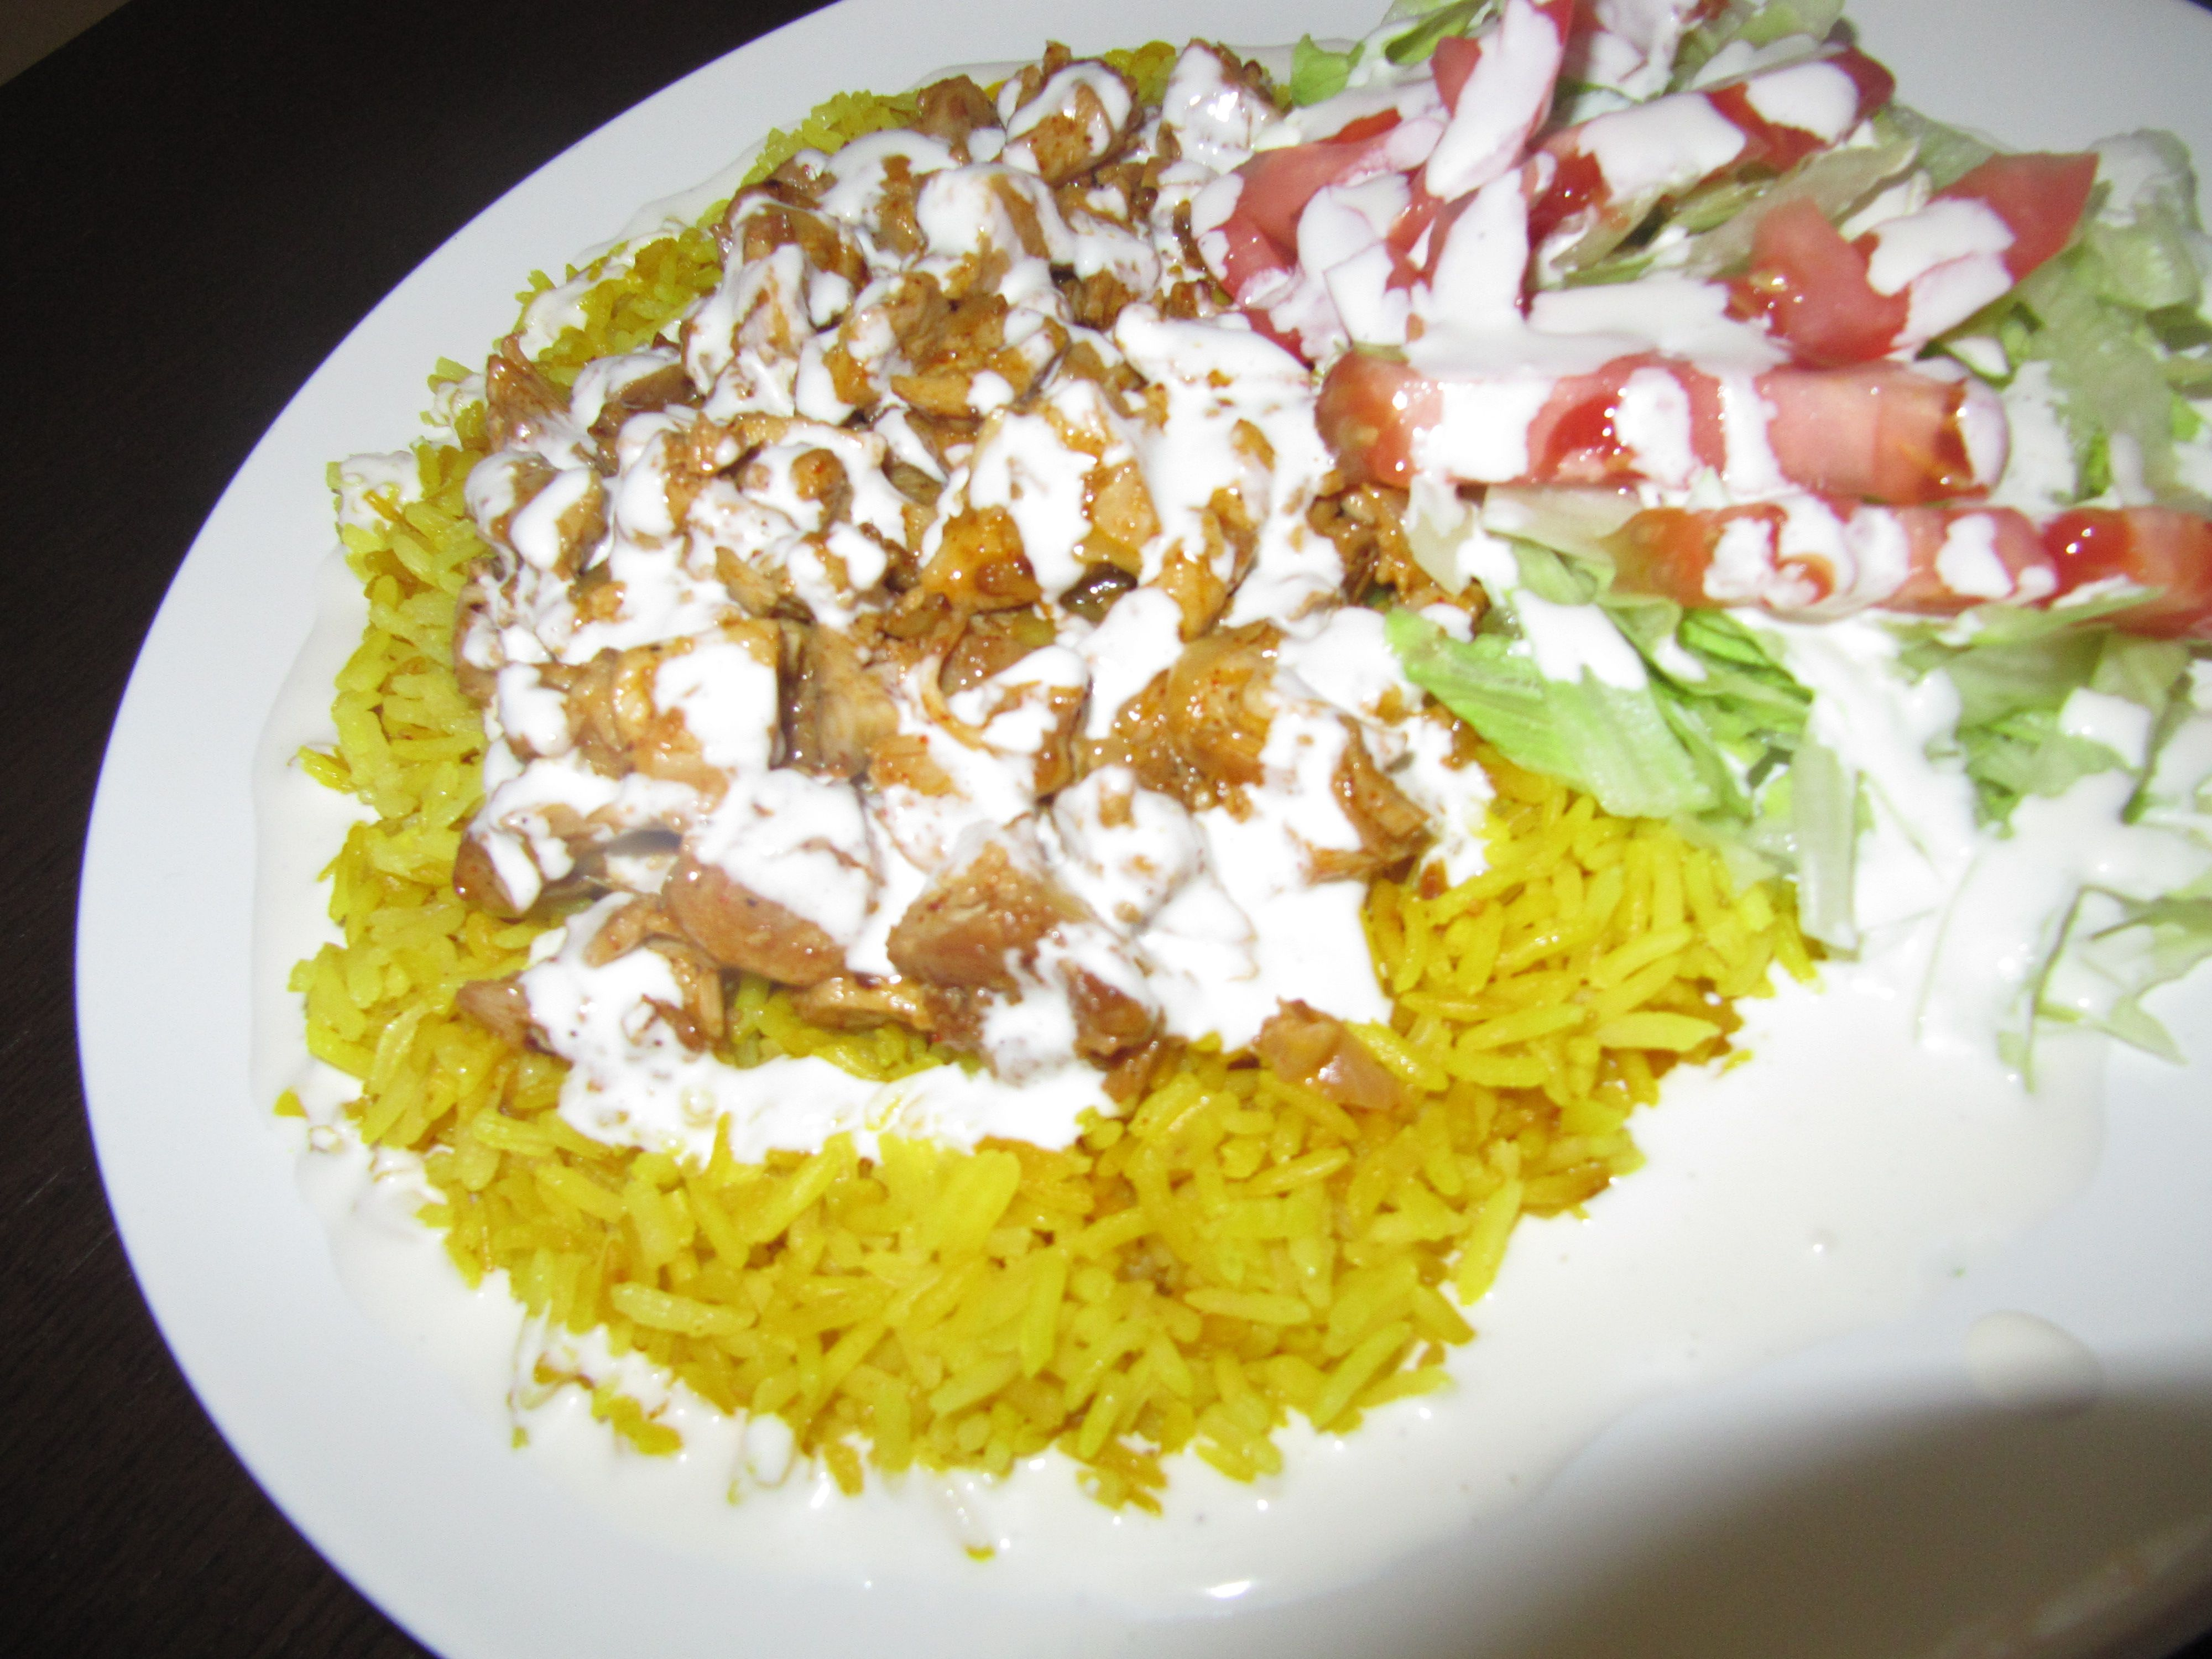 Halal Chicken Over Rice Featuring The Famous White Sauce White Sauce Recipes Chicken Recipes White Rice Recipes